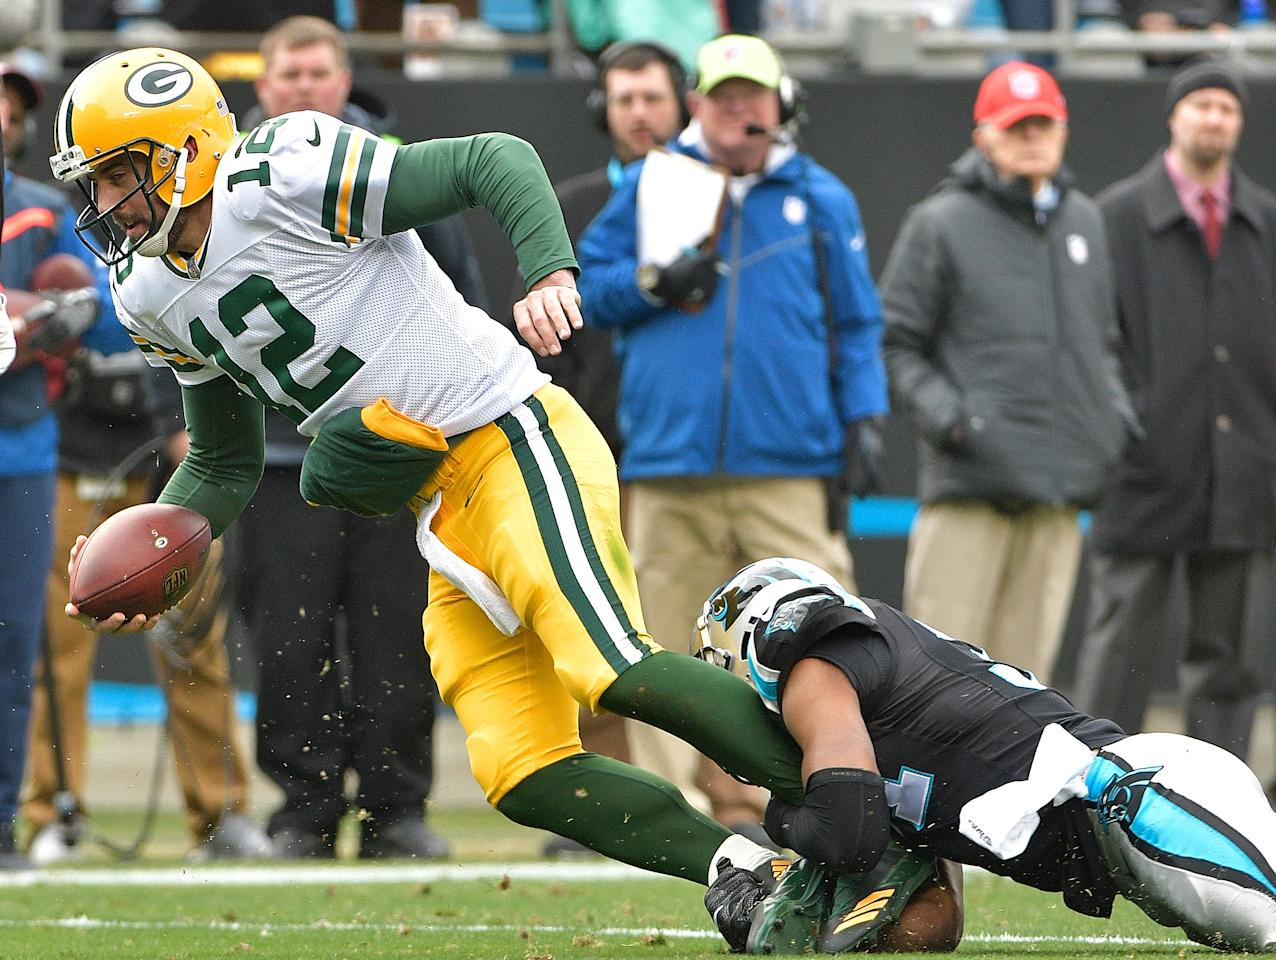 <p>Jairus Byrd #31 of the Carolina Panthers tackles Aaron Rodgers #12 of the Green Bay Packers during their game at Bank of America Stadium on December 17, 2017 in Charlotte, North Carolina. (Photo by Grant Halverson/Getty Images) </p>